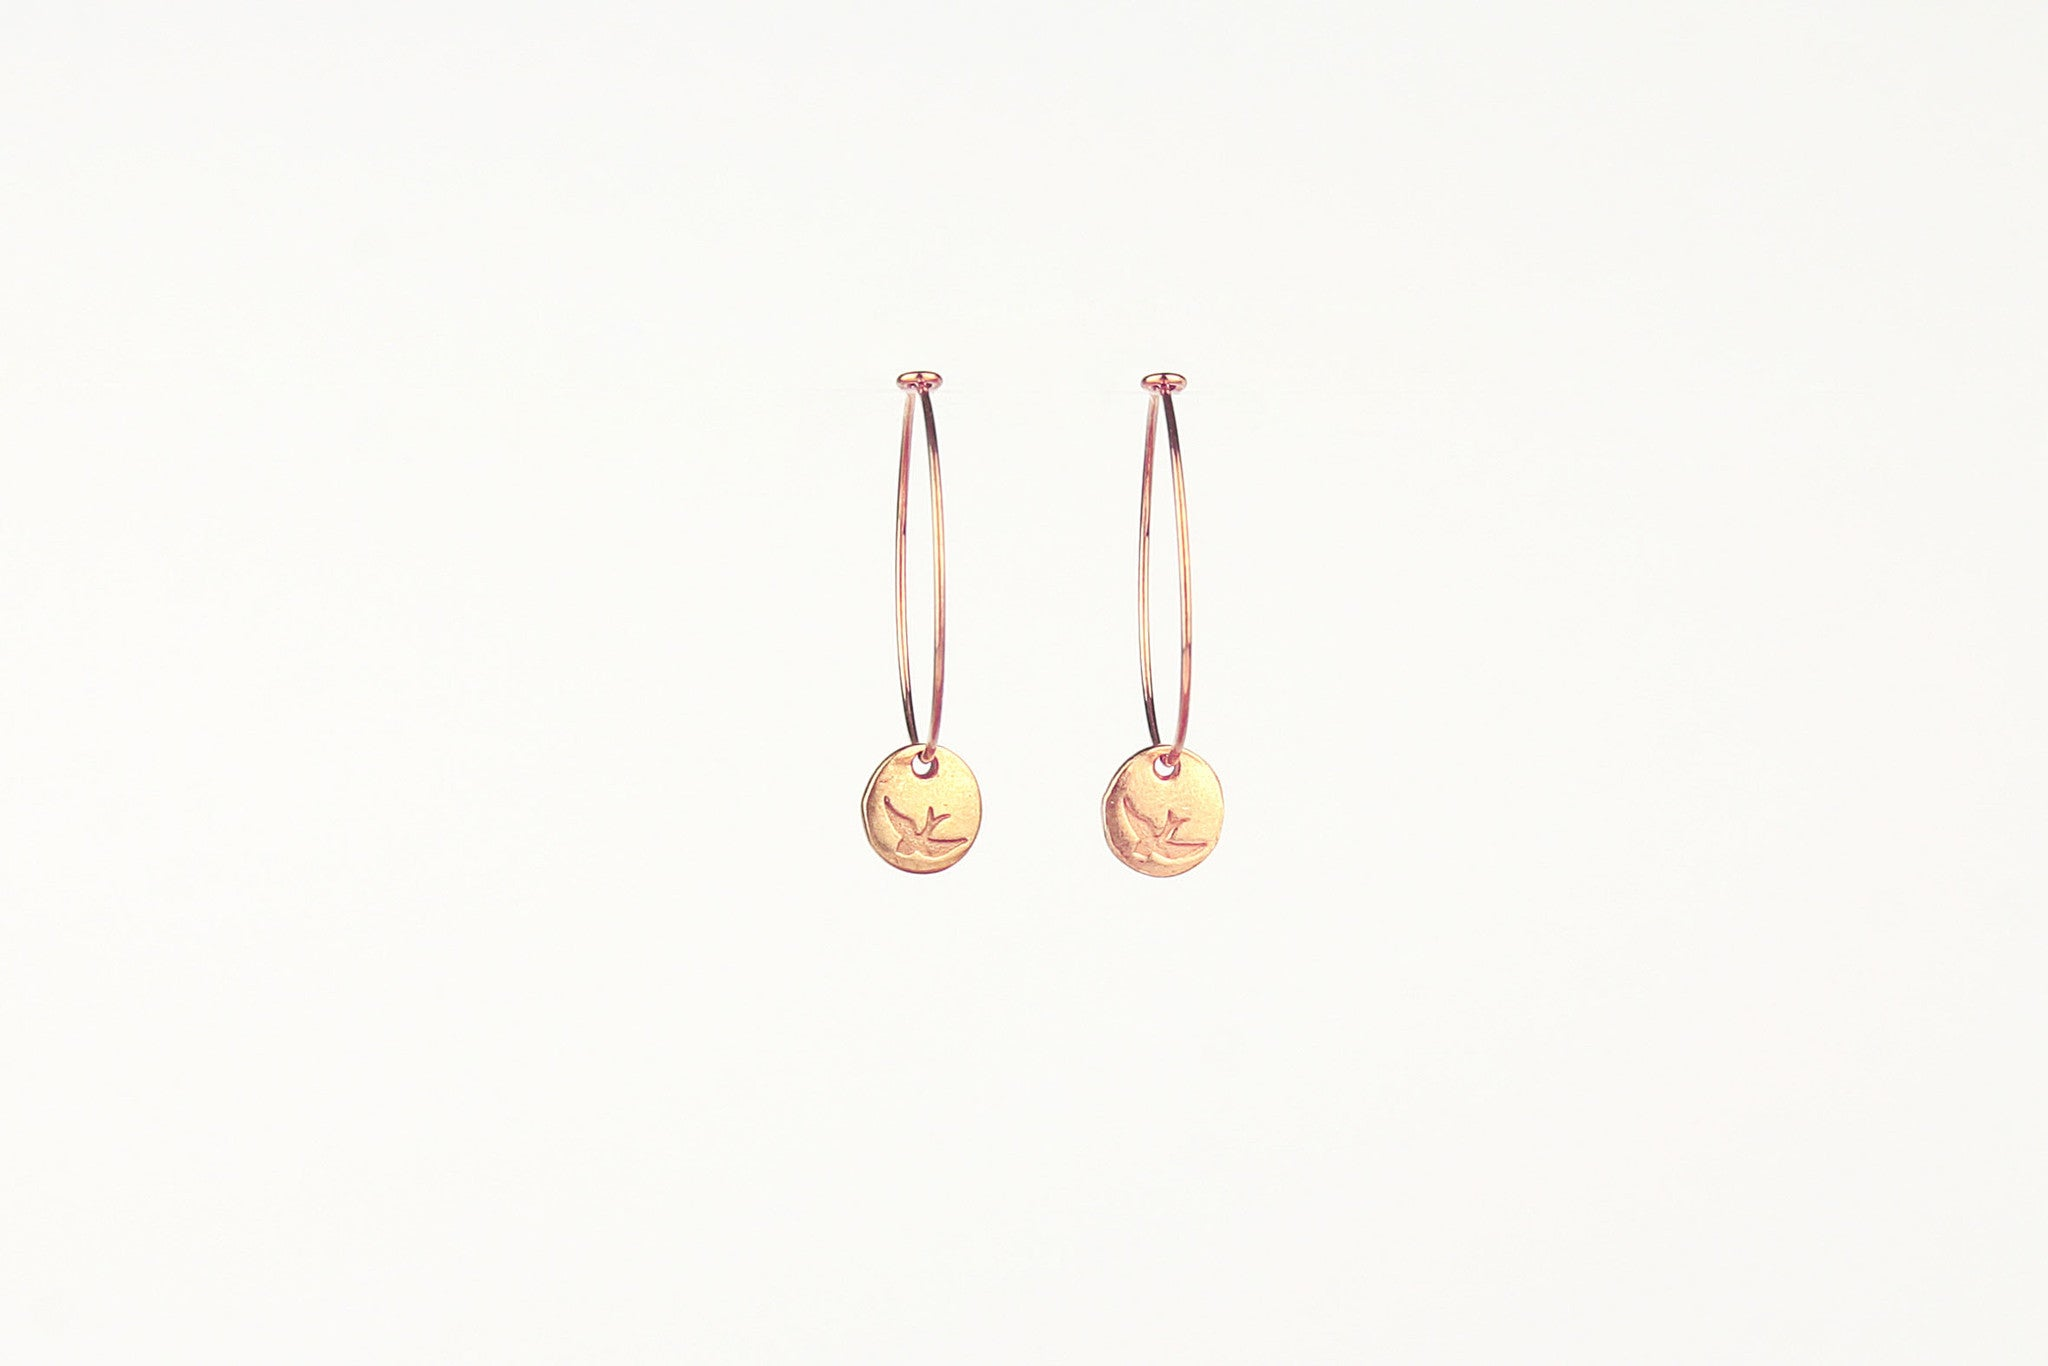 jewelberry ohrringe earrings bird token hoops rose gold plated sterling silver fine jewelry handmade with love fairtrade